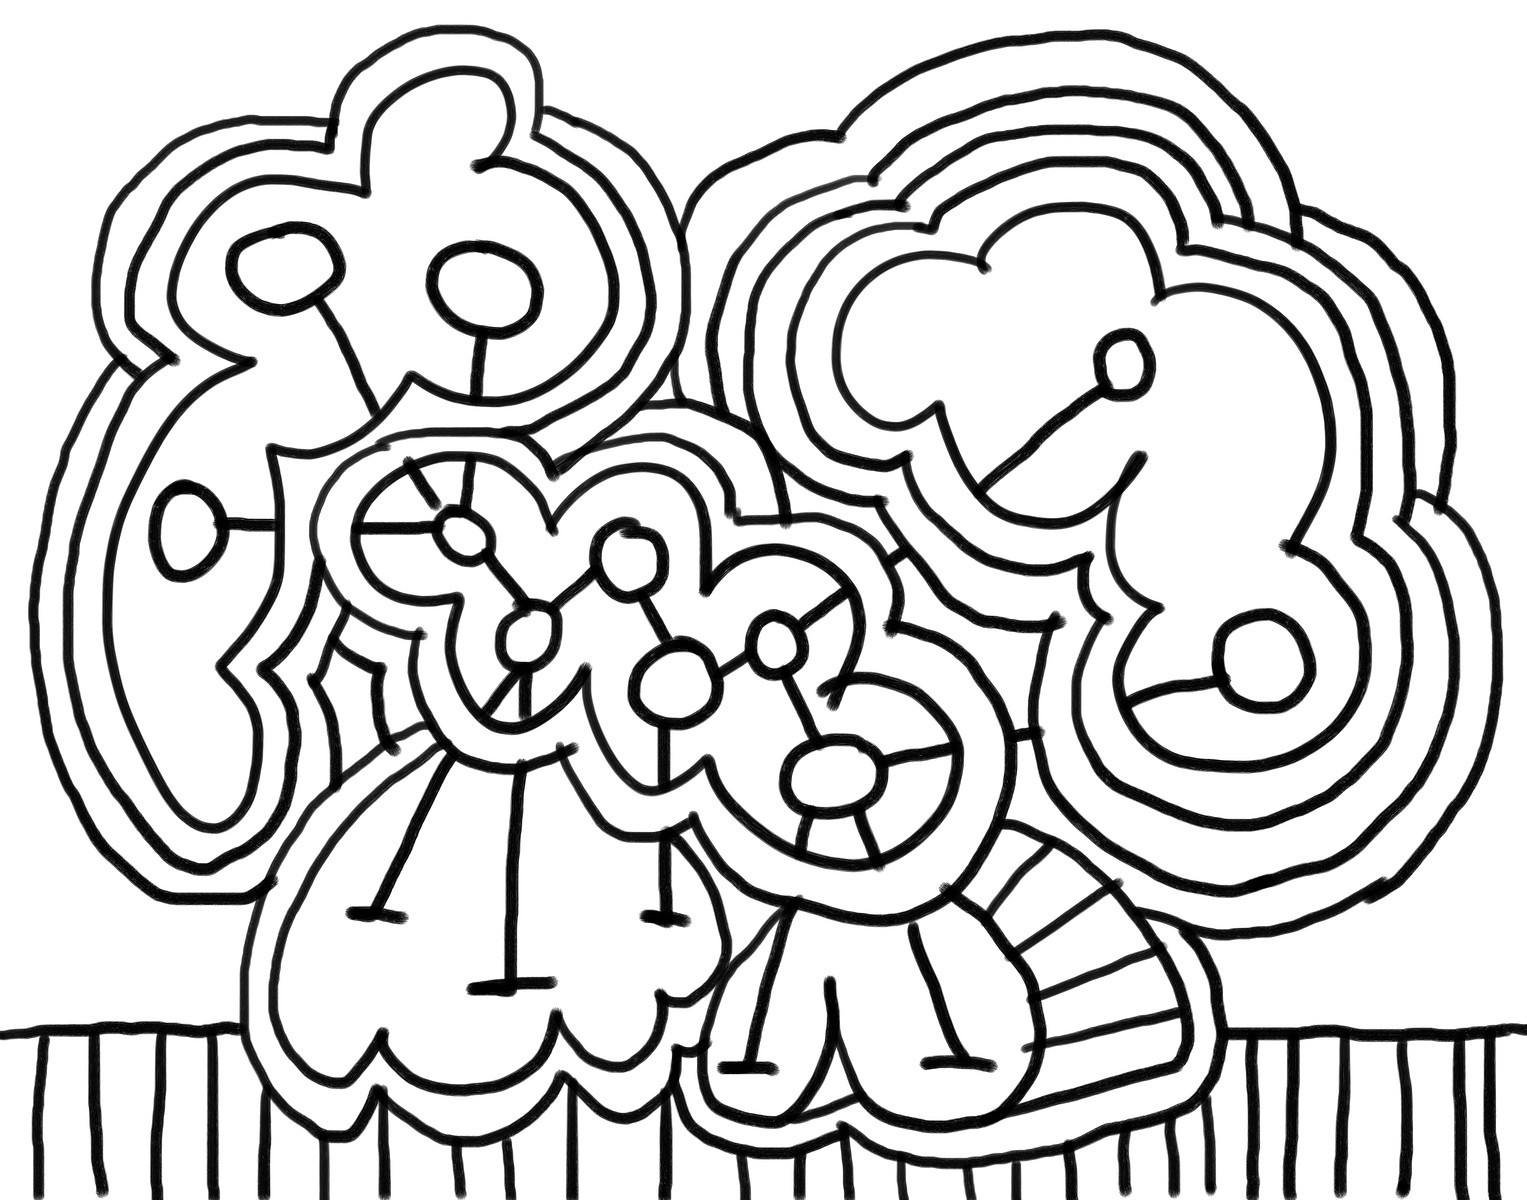 coloring pitchers : Abstract Coloring Pages For Kids